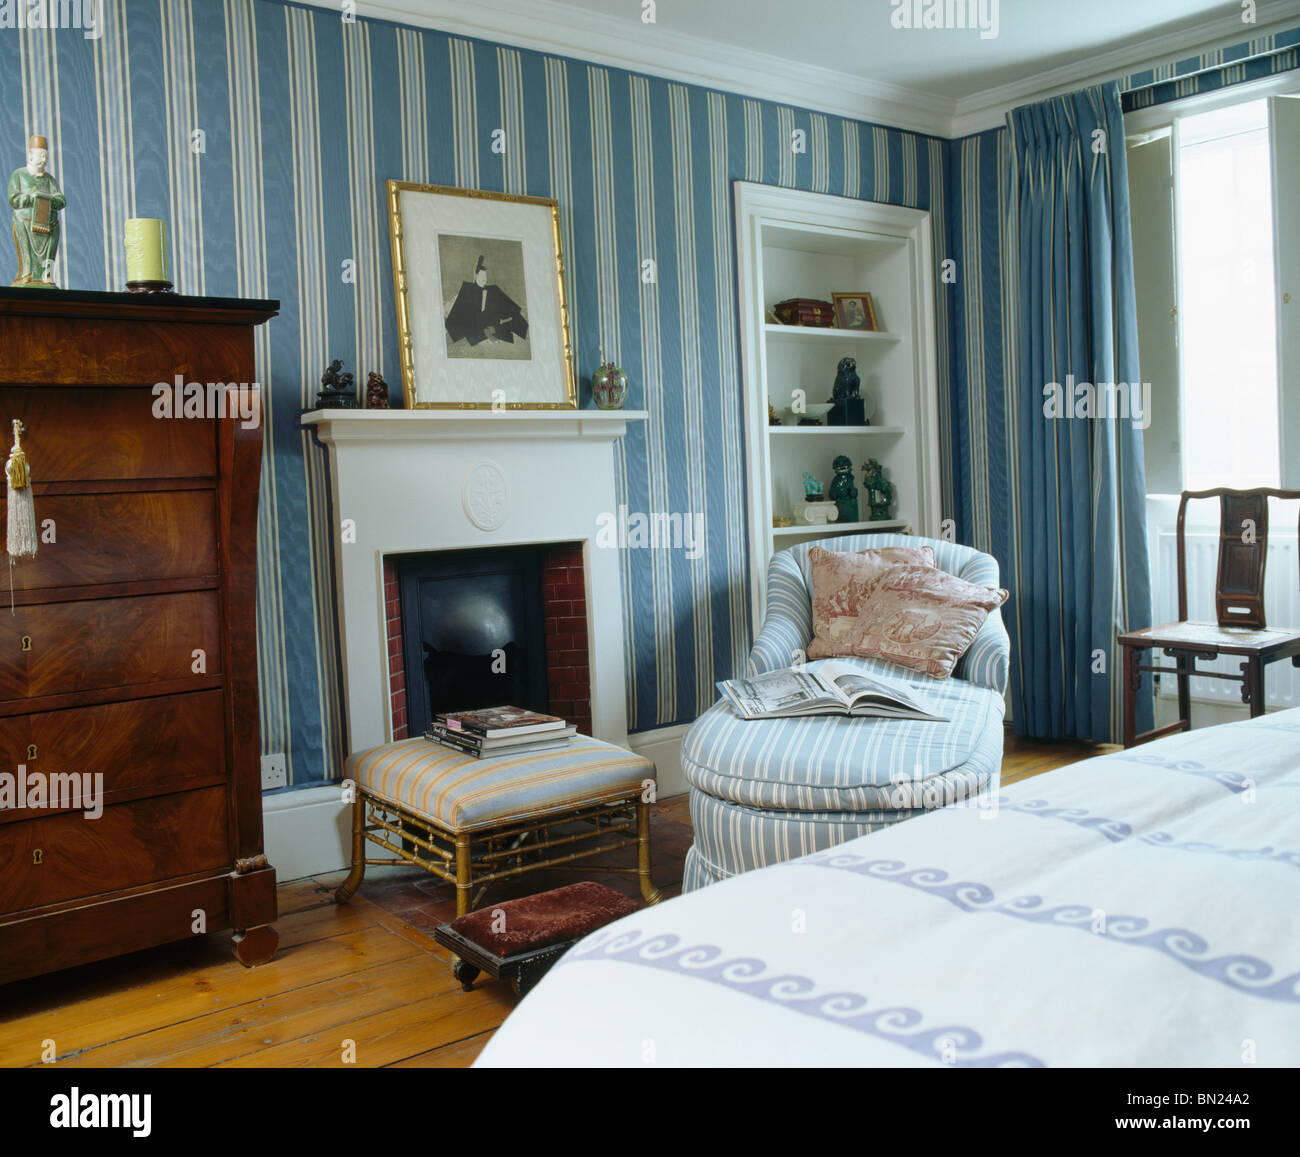 Blue striped wallpaper in townhouse bedroom with striped for Striped wallpaper bedroom designs